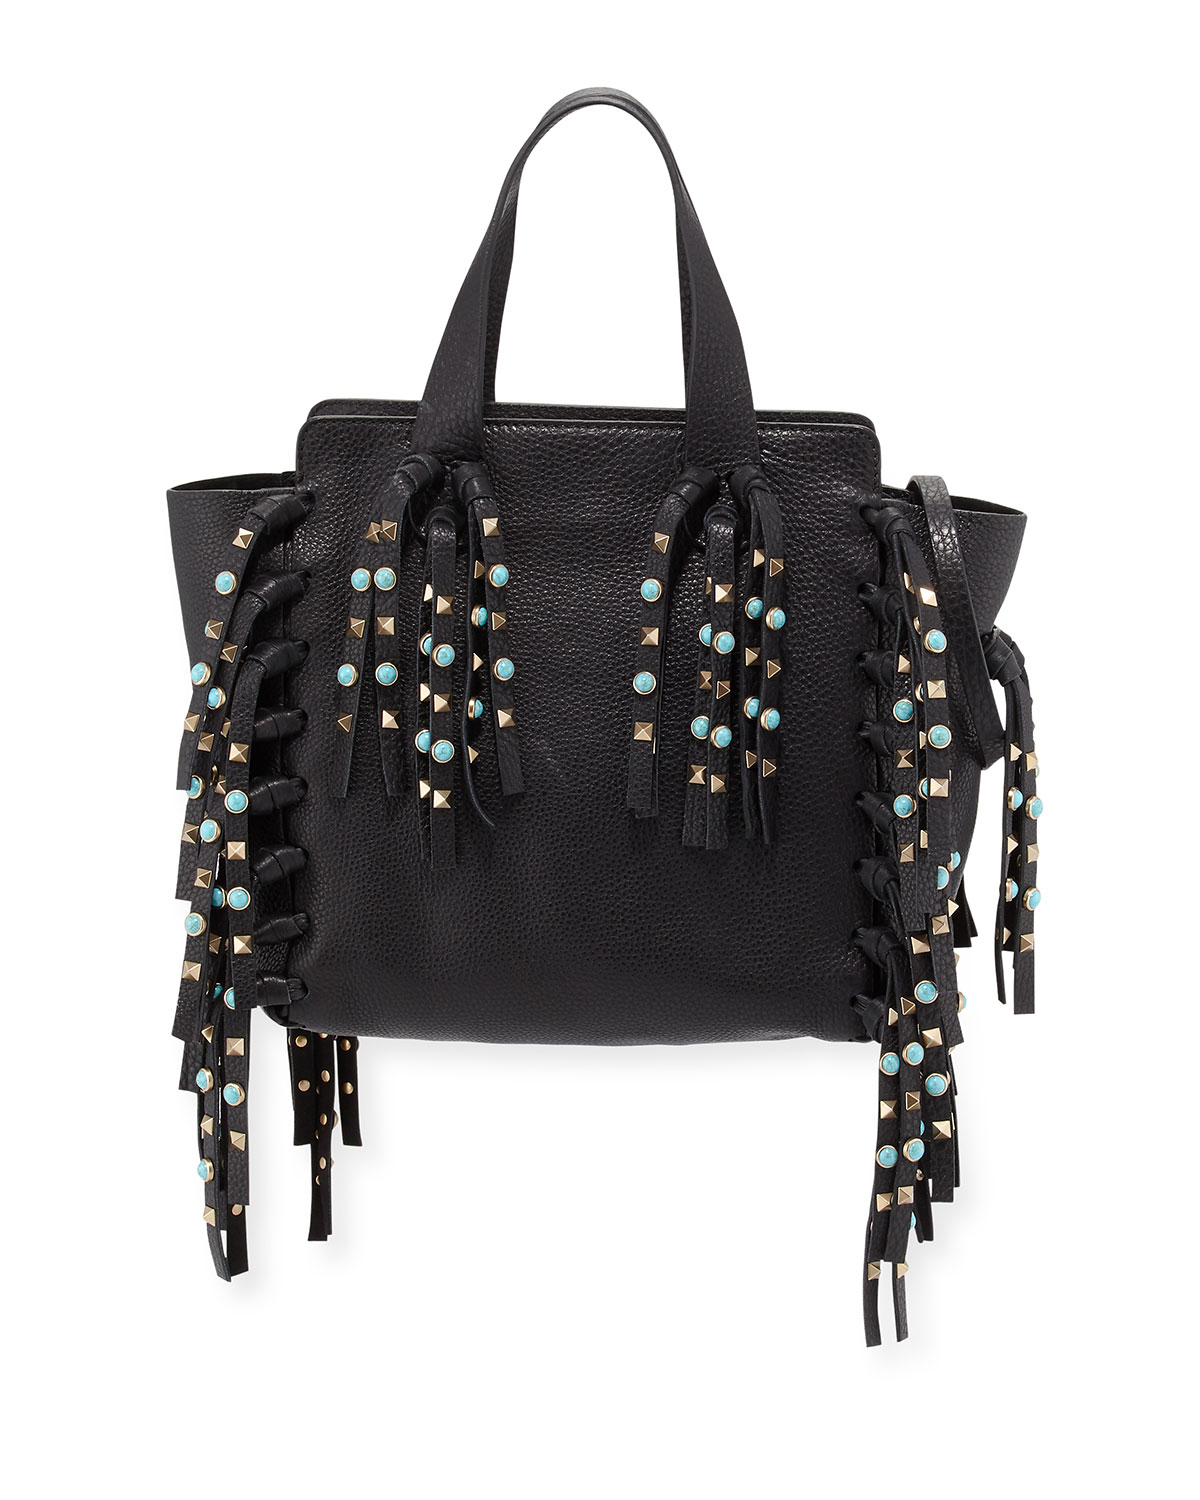 Valentino rockstud small leather tote